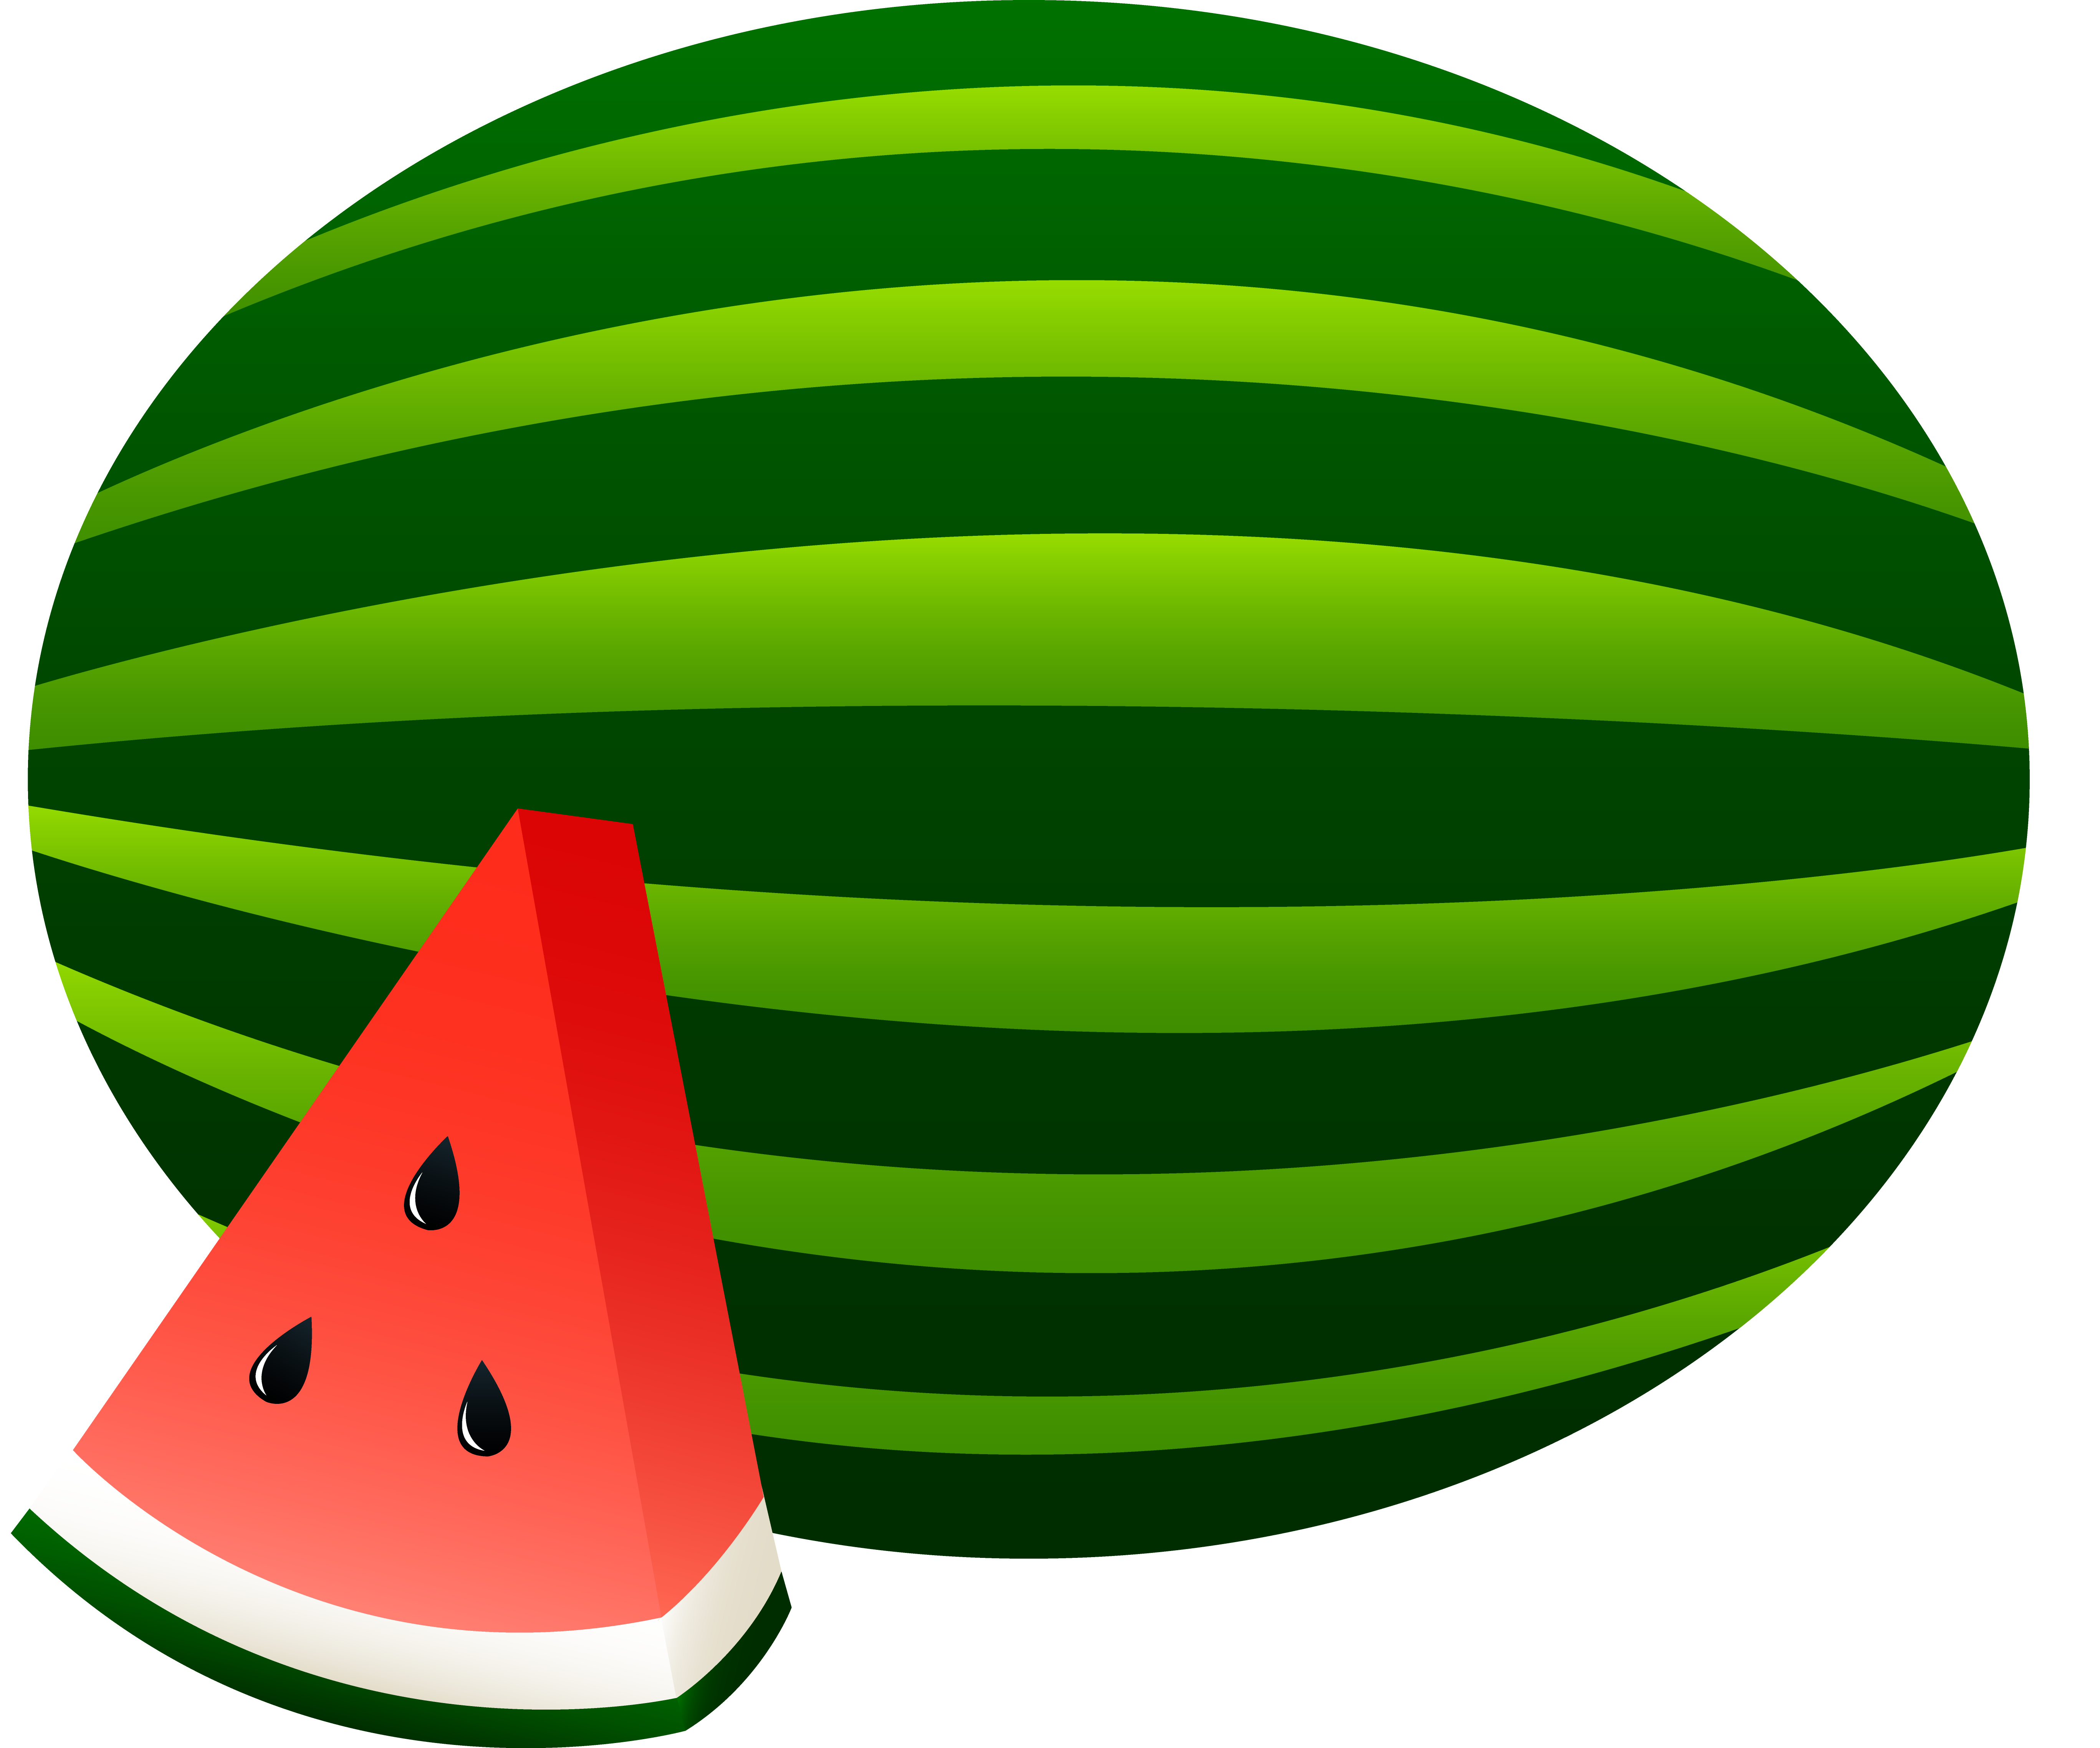 Watermelon fruit clipart.